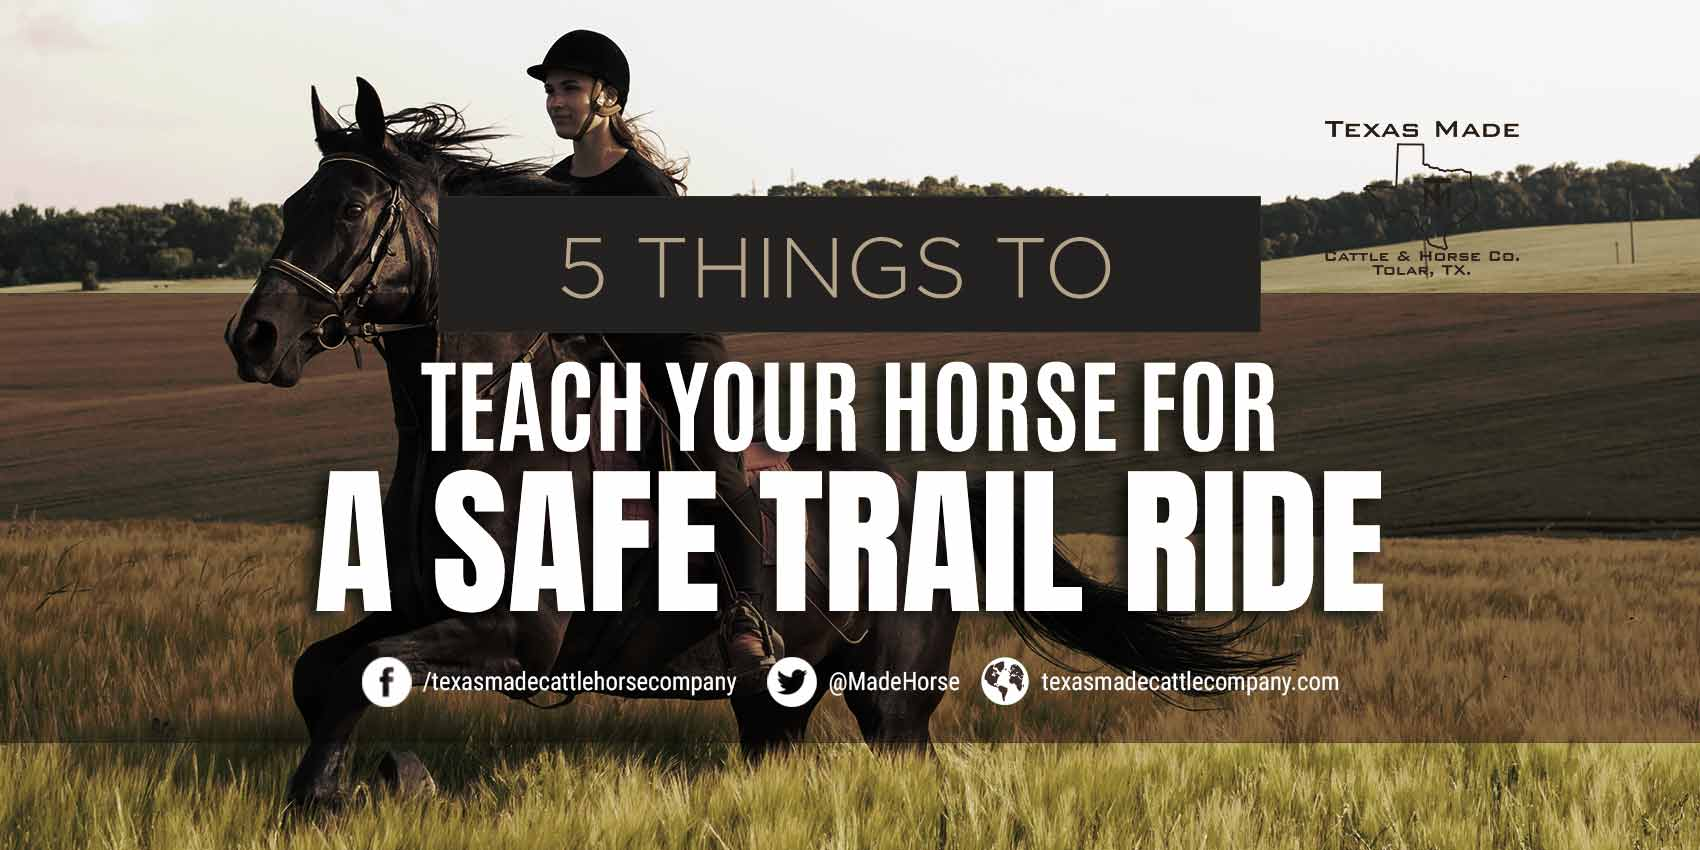 5 Things to Teach Your Horse for a Safe Trail Ride